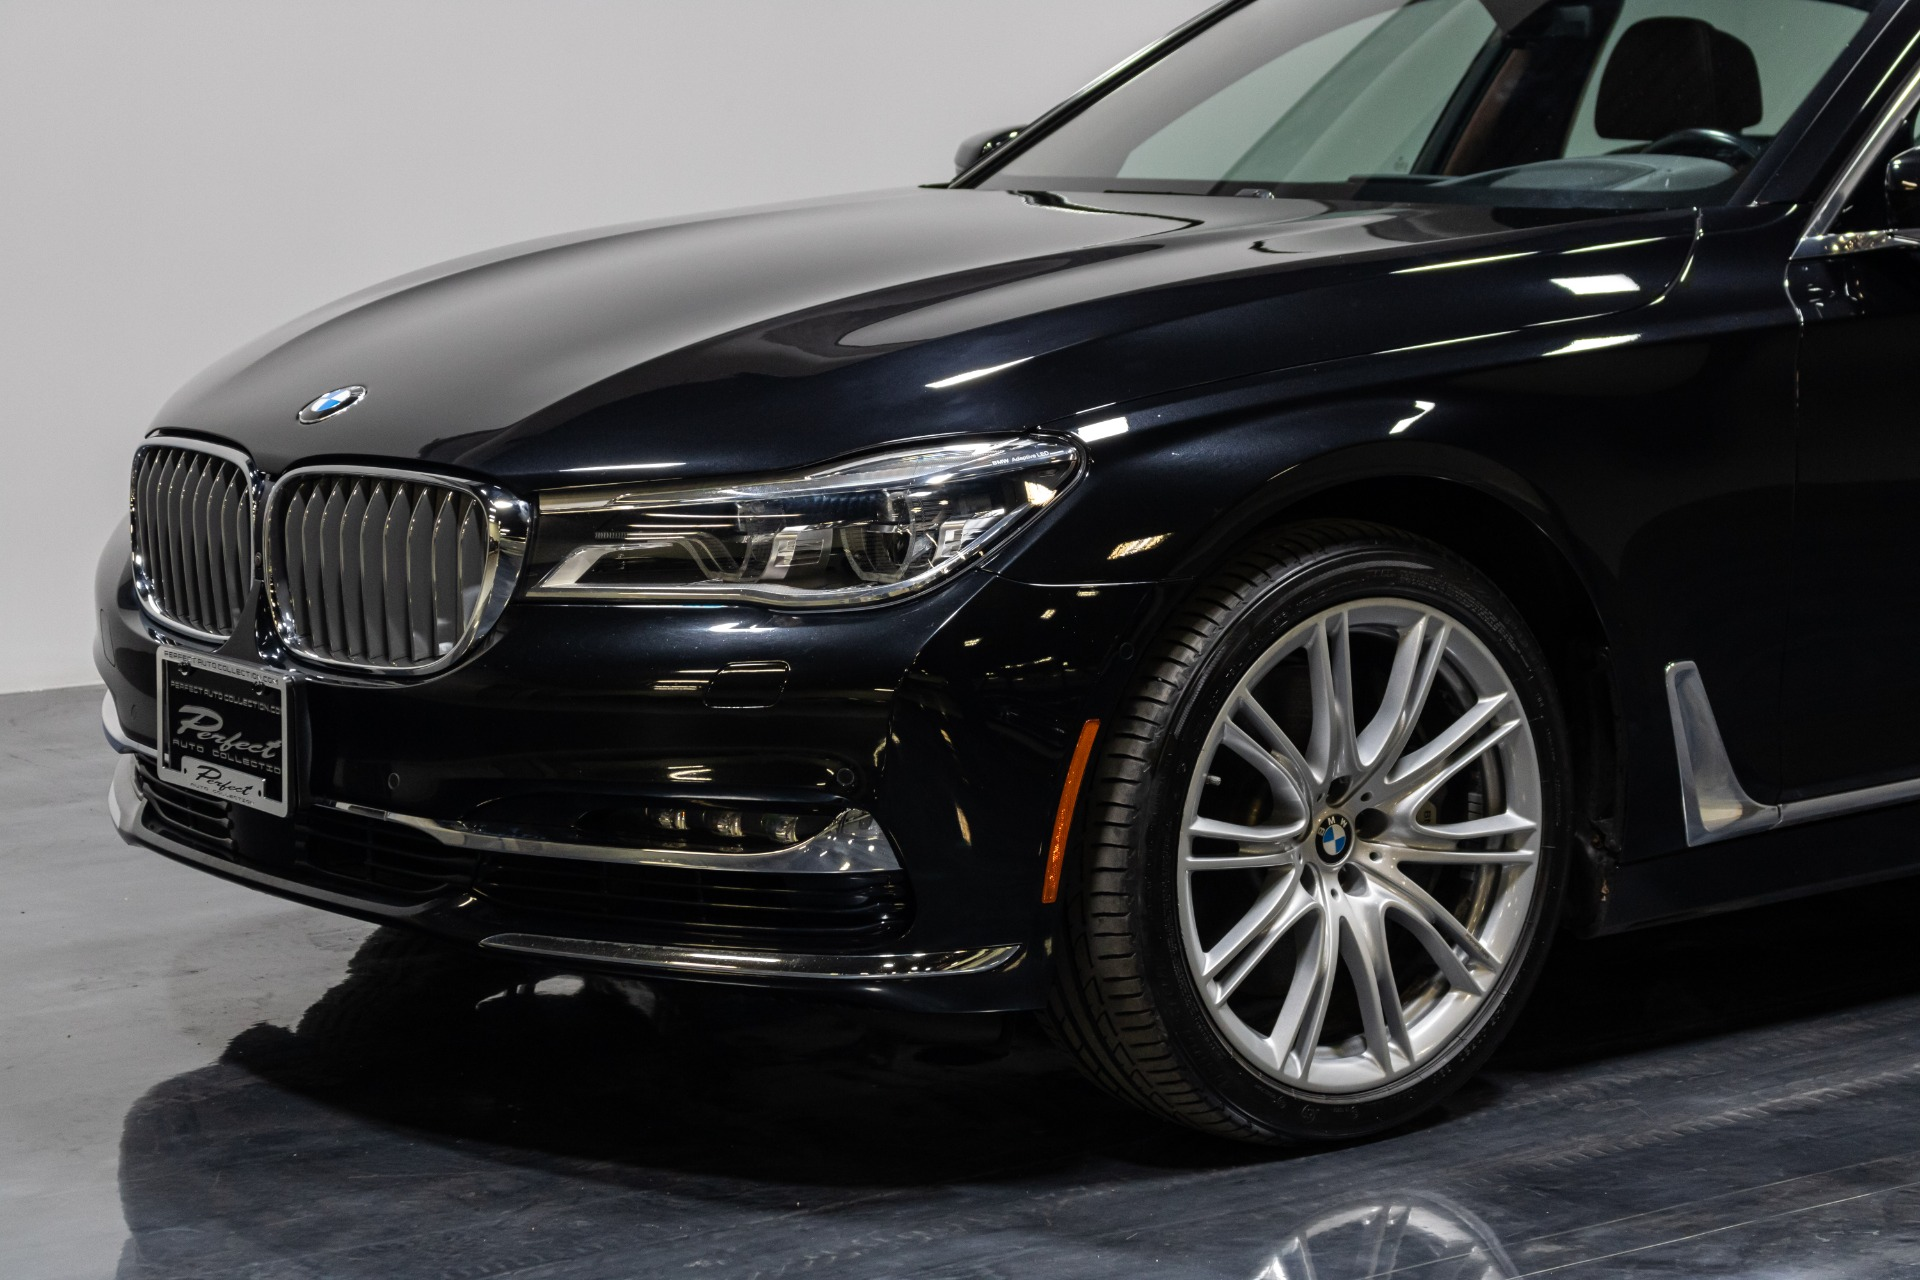 Used 2016 BMW 7 Series 750i xDrive Individual for sale Sold at Perfect Auto Collection in Akron OH 44310 3